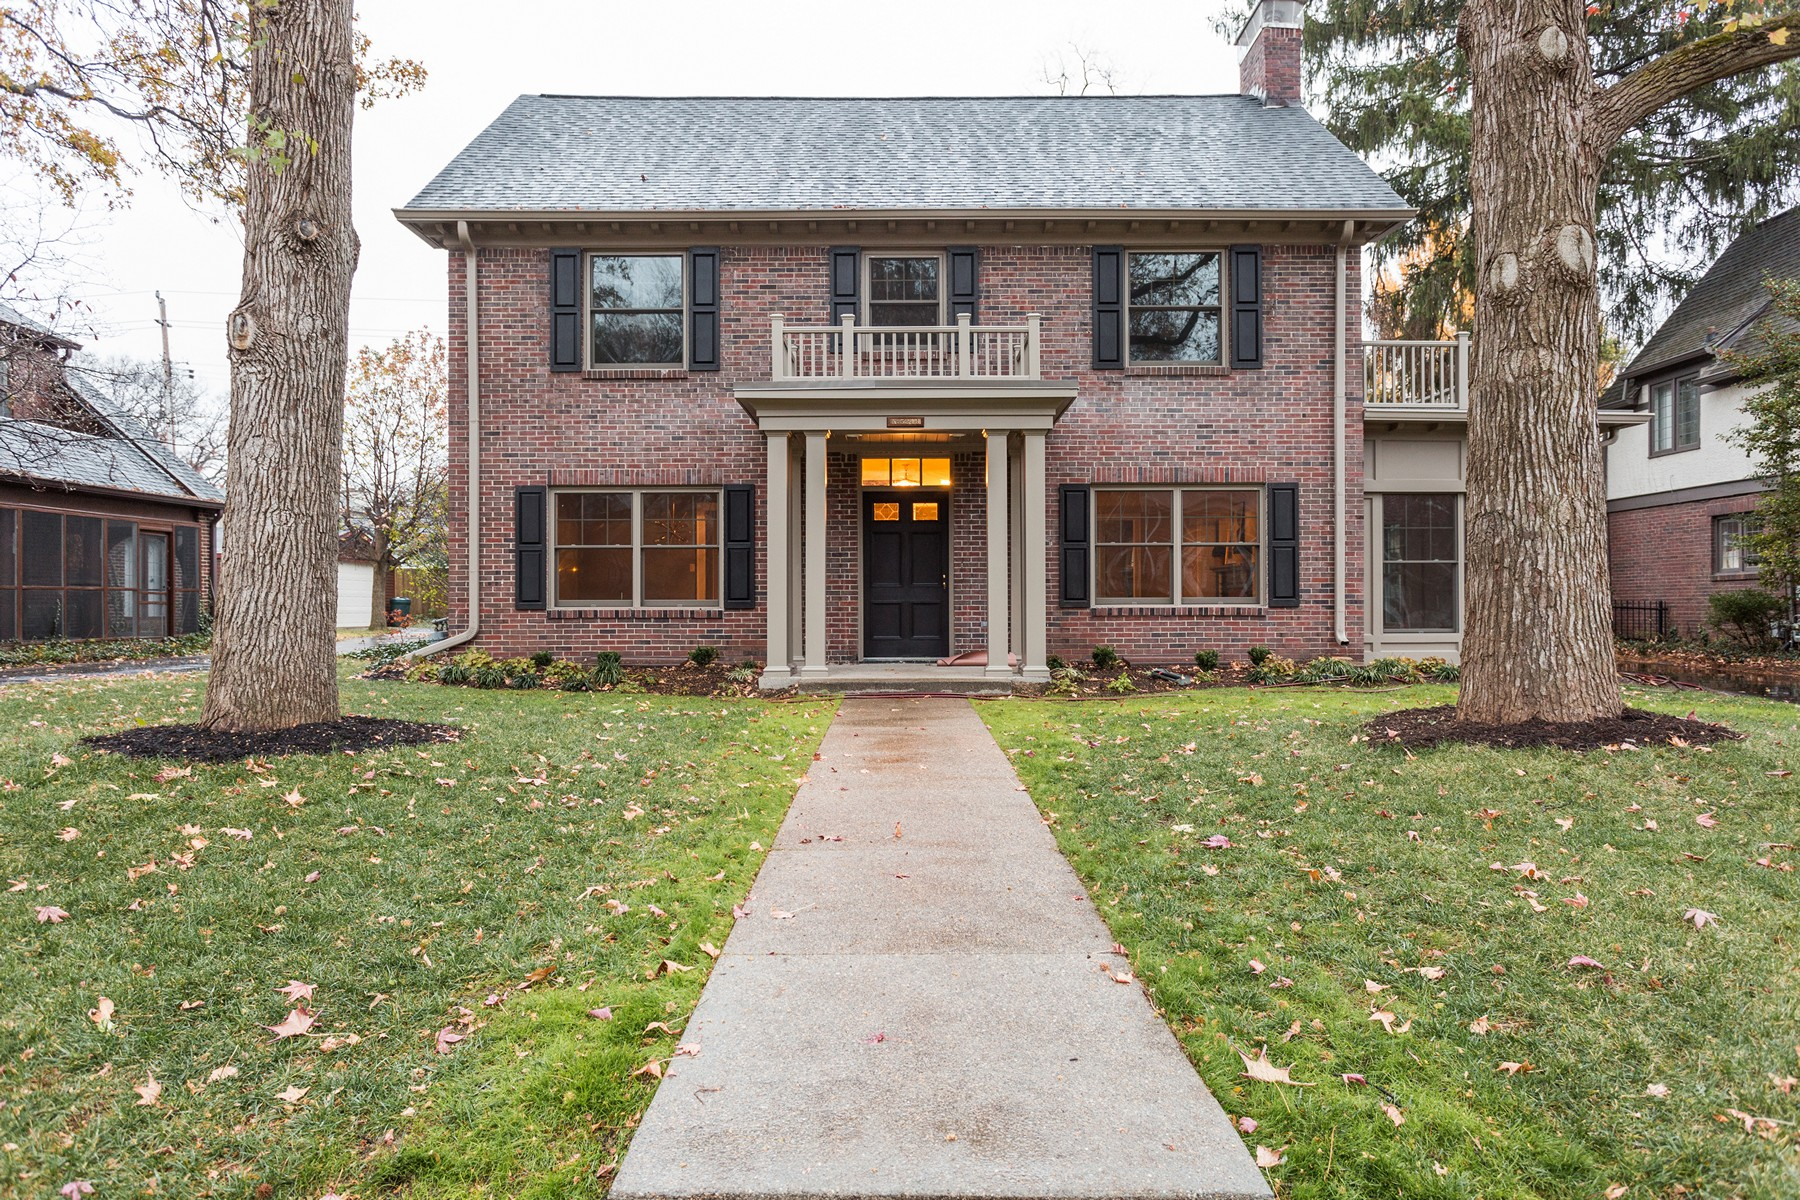 Single Family Home for Sale at Stunning Completely Renovated Residence 5249 Pennsylvania Avenue Indianapolis, Indiana 46220 United States